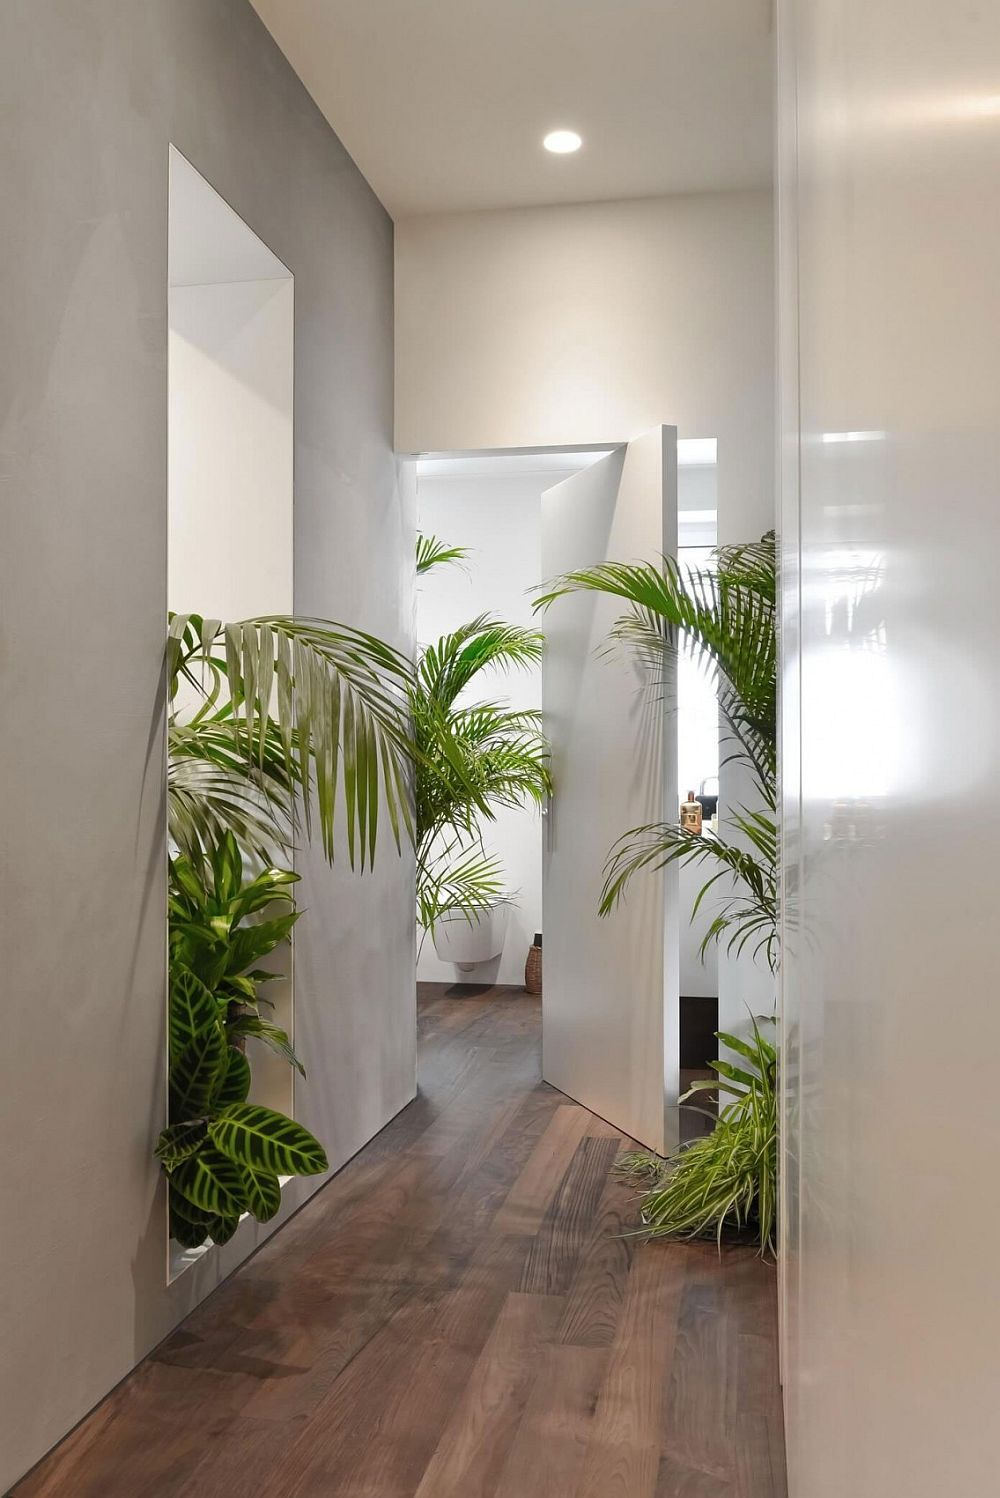 Smart partitions and greenery shape the fabulous Milan apartment